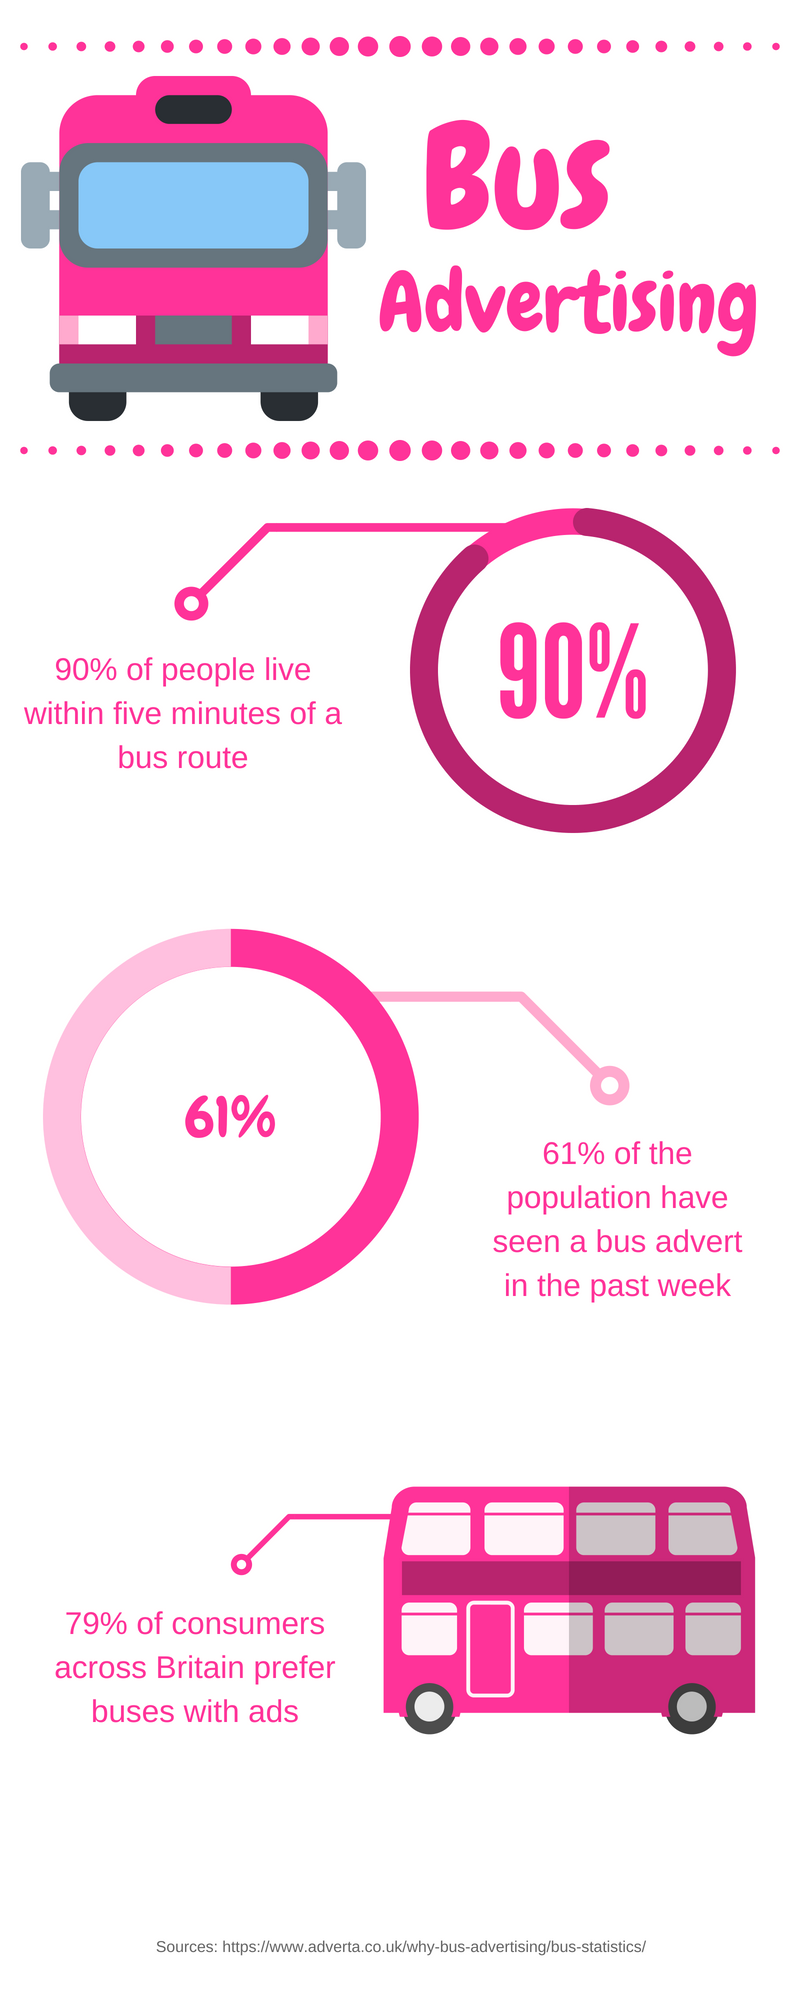 An infographic detailing bus advertising statistics.   90% of the UK population live within 5 minutes of a bus route.  61% have seen a bus advert in the past week.  79% prefer buses with adverts on them.